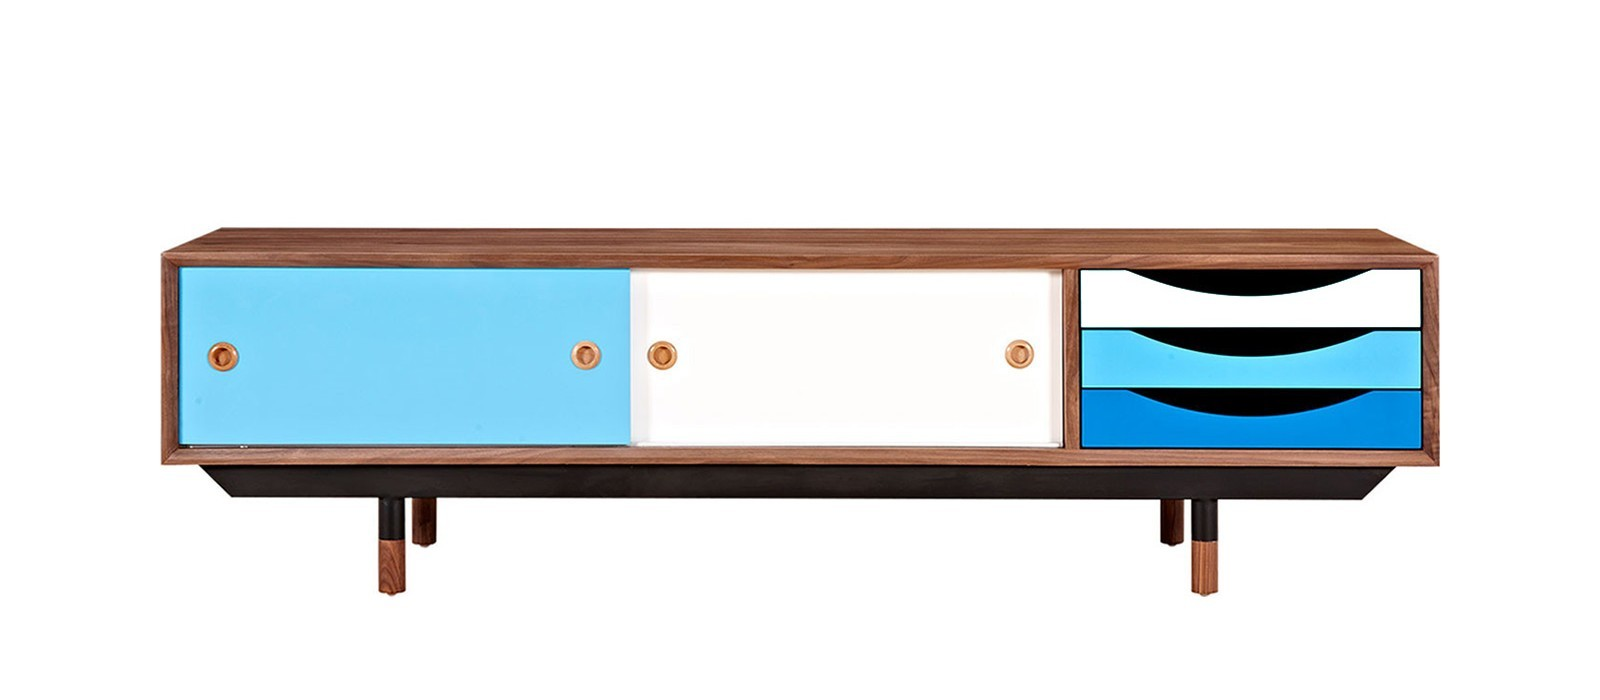 Gradient TV Stand in Blue from Dot & Bo - Spring Colors Retro Roundup